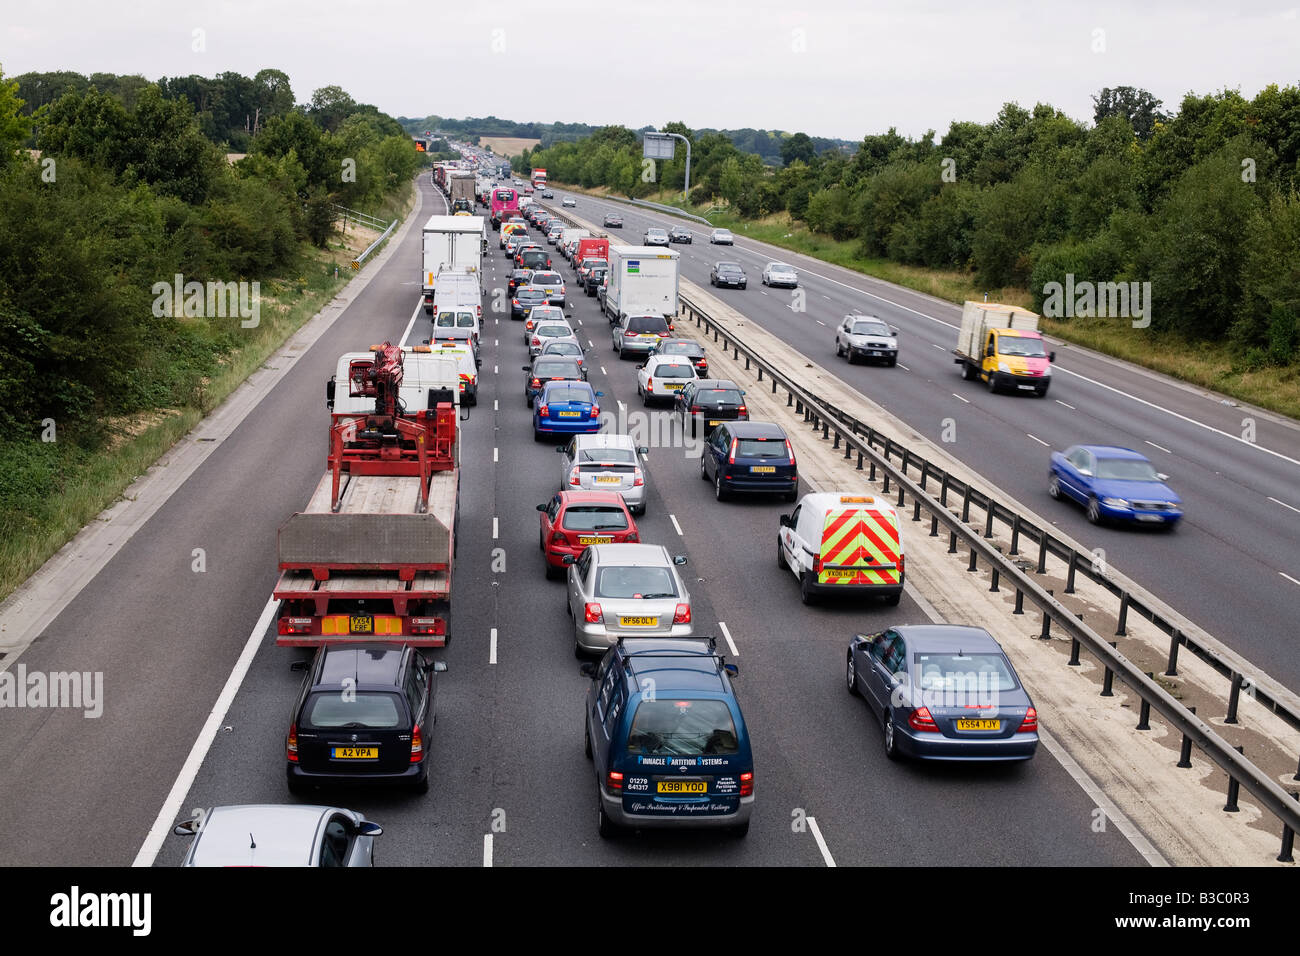 Traffic congestion due to an accident on the M11 motorway heading north between J7 Harlow and J8 Stansted Airport - Stock Image